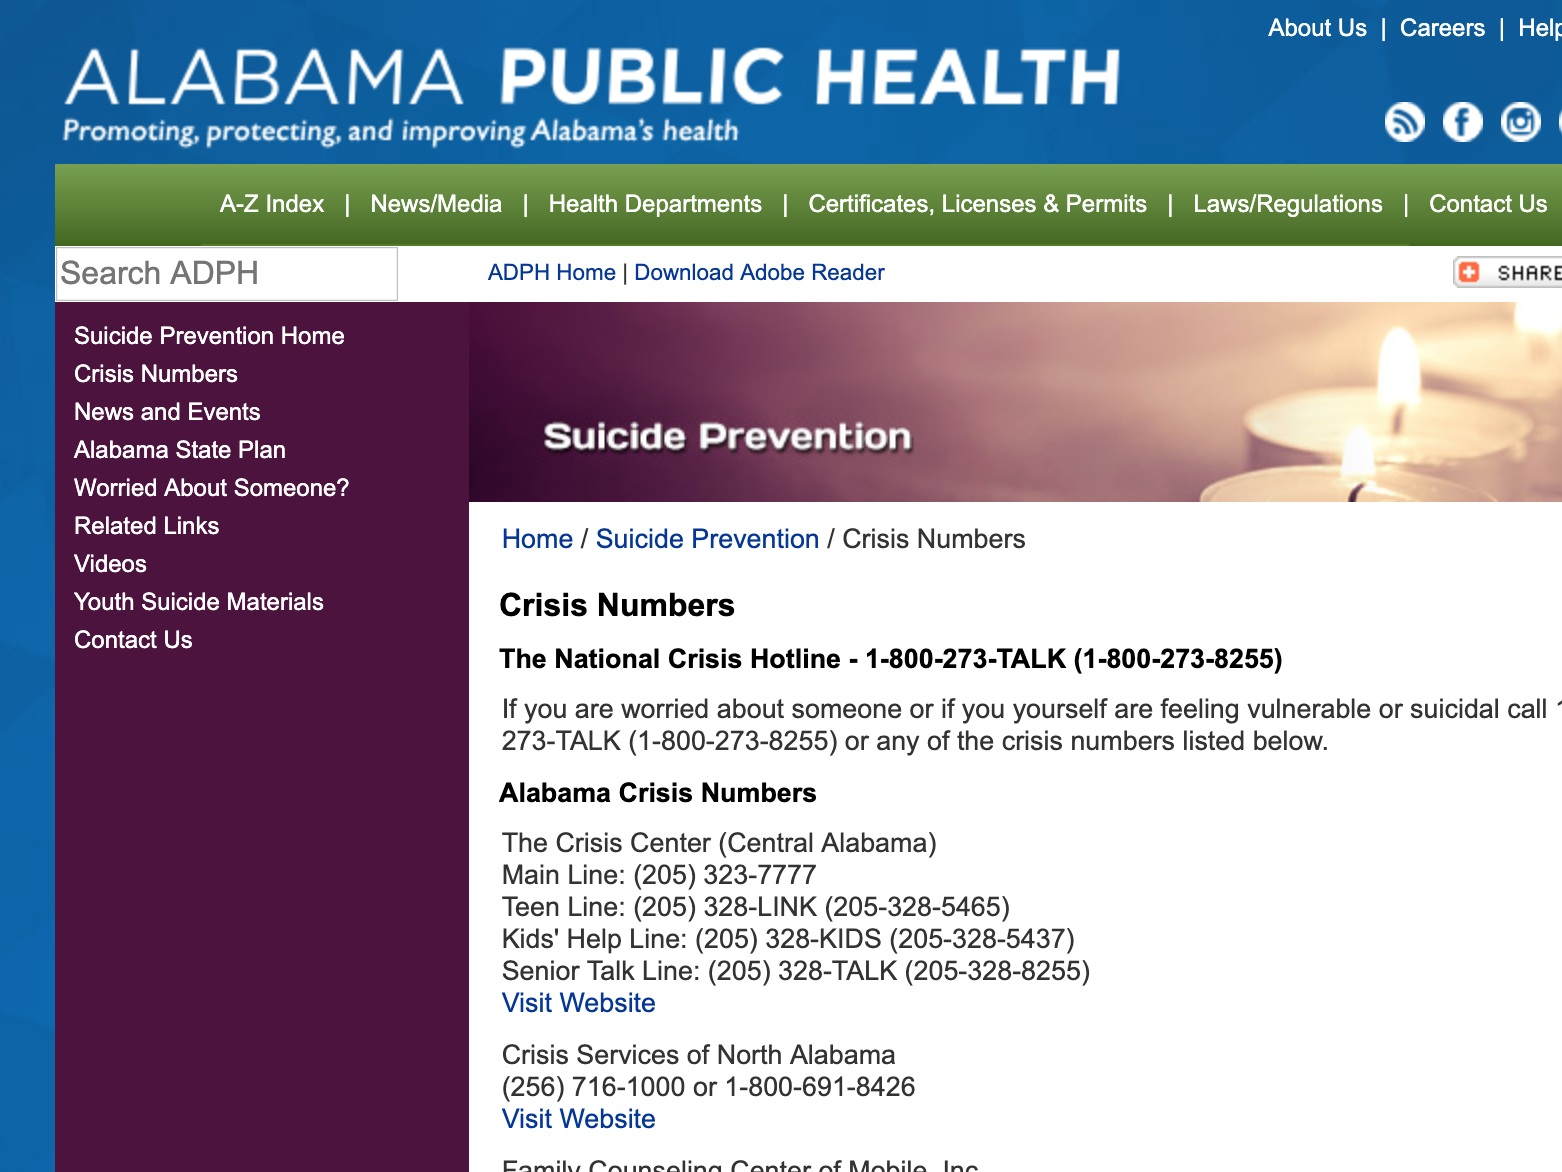 alabama crisis hotlines - Various crisis hotlines and helplines for Alabamans.